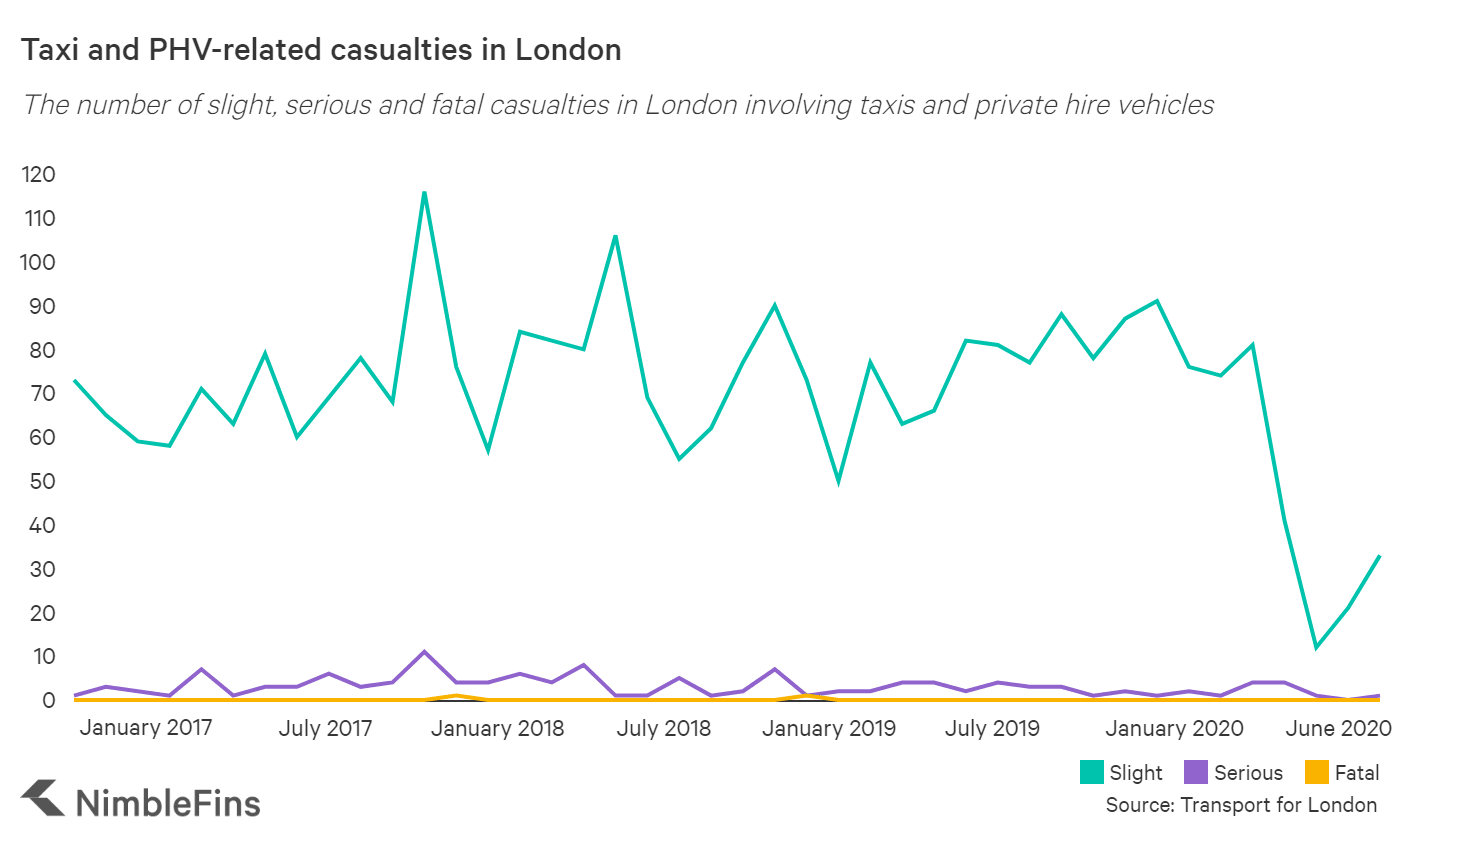 Graph showing the number of taxi/PHV related casualties in London by month